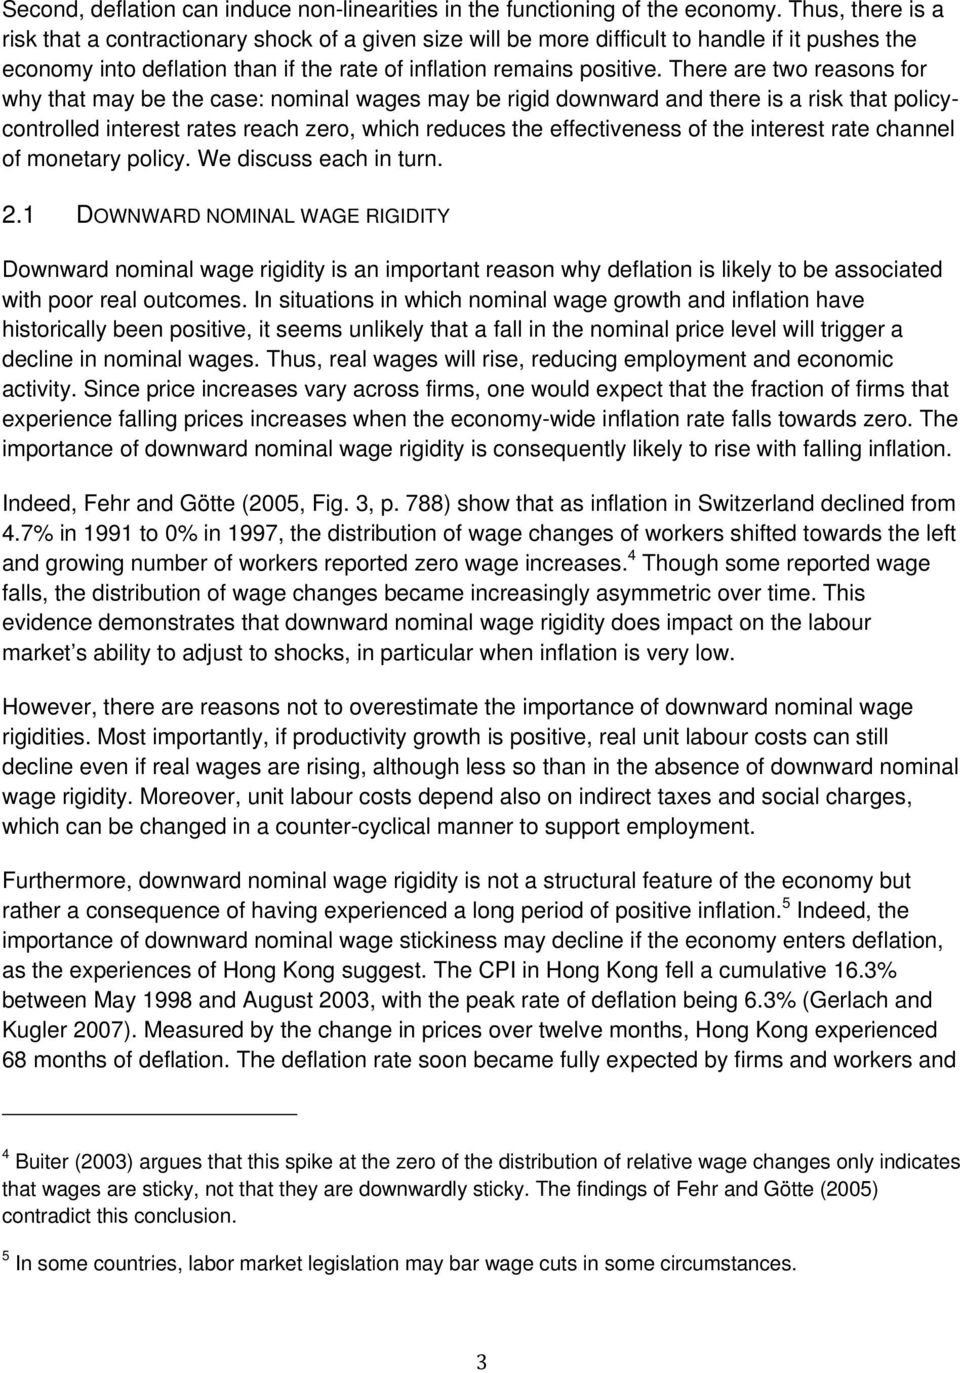 There are two reasons for why that may be the case: nominal wages may be rigid downward and there is a risk that policycontrolled interest rates reach zero, which reduces the effectiveness of the